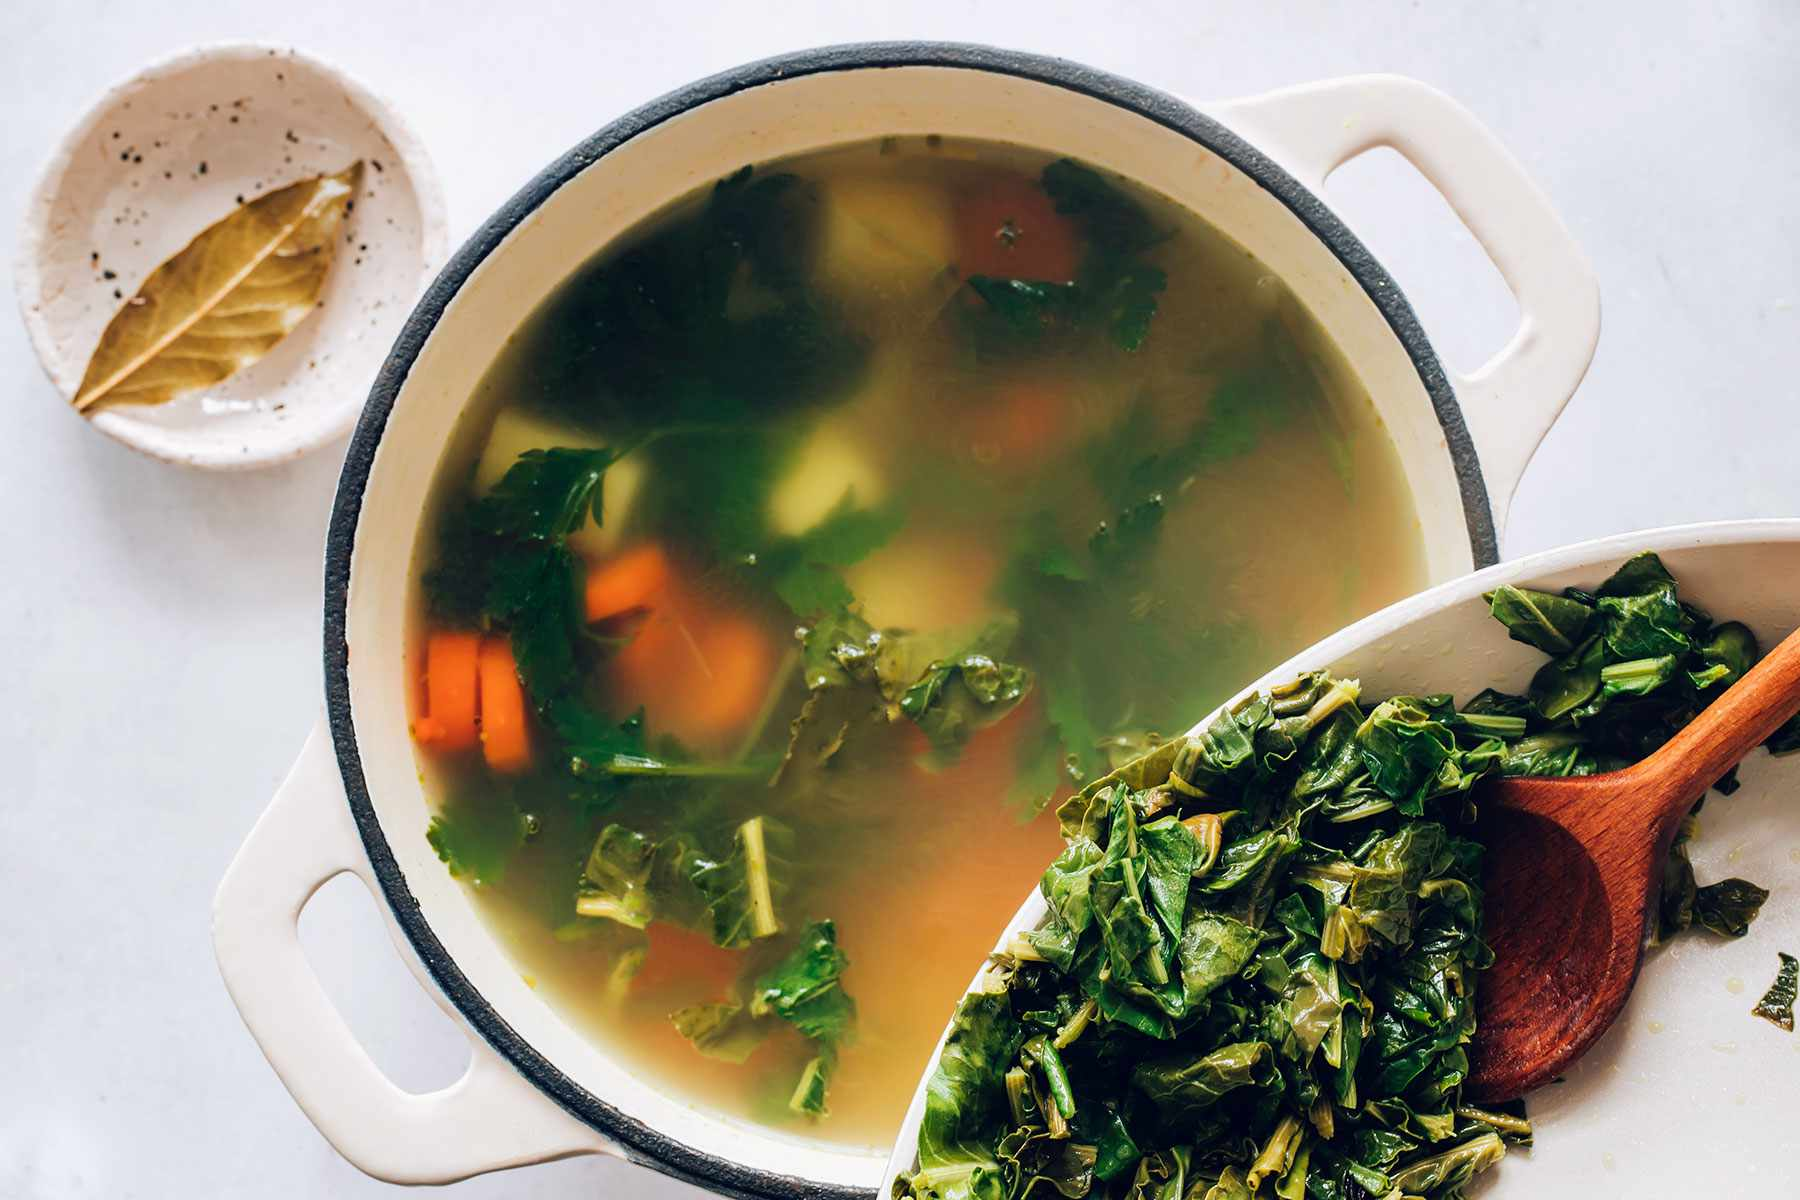 add the sorrel to the pot of soup